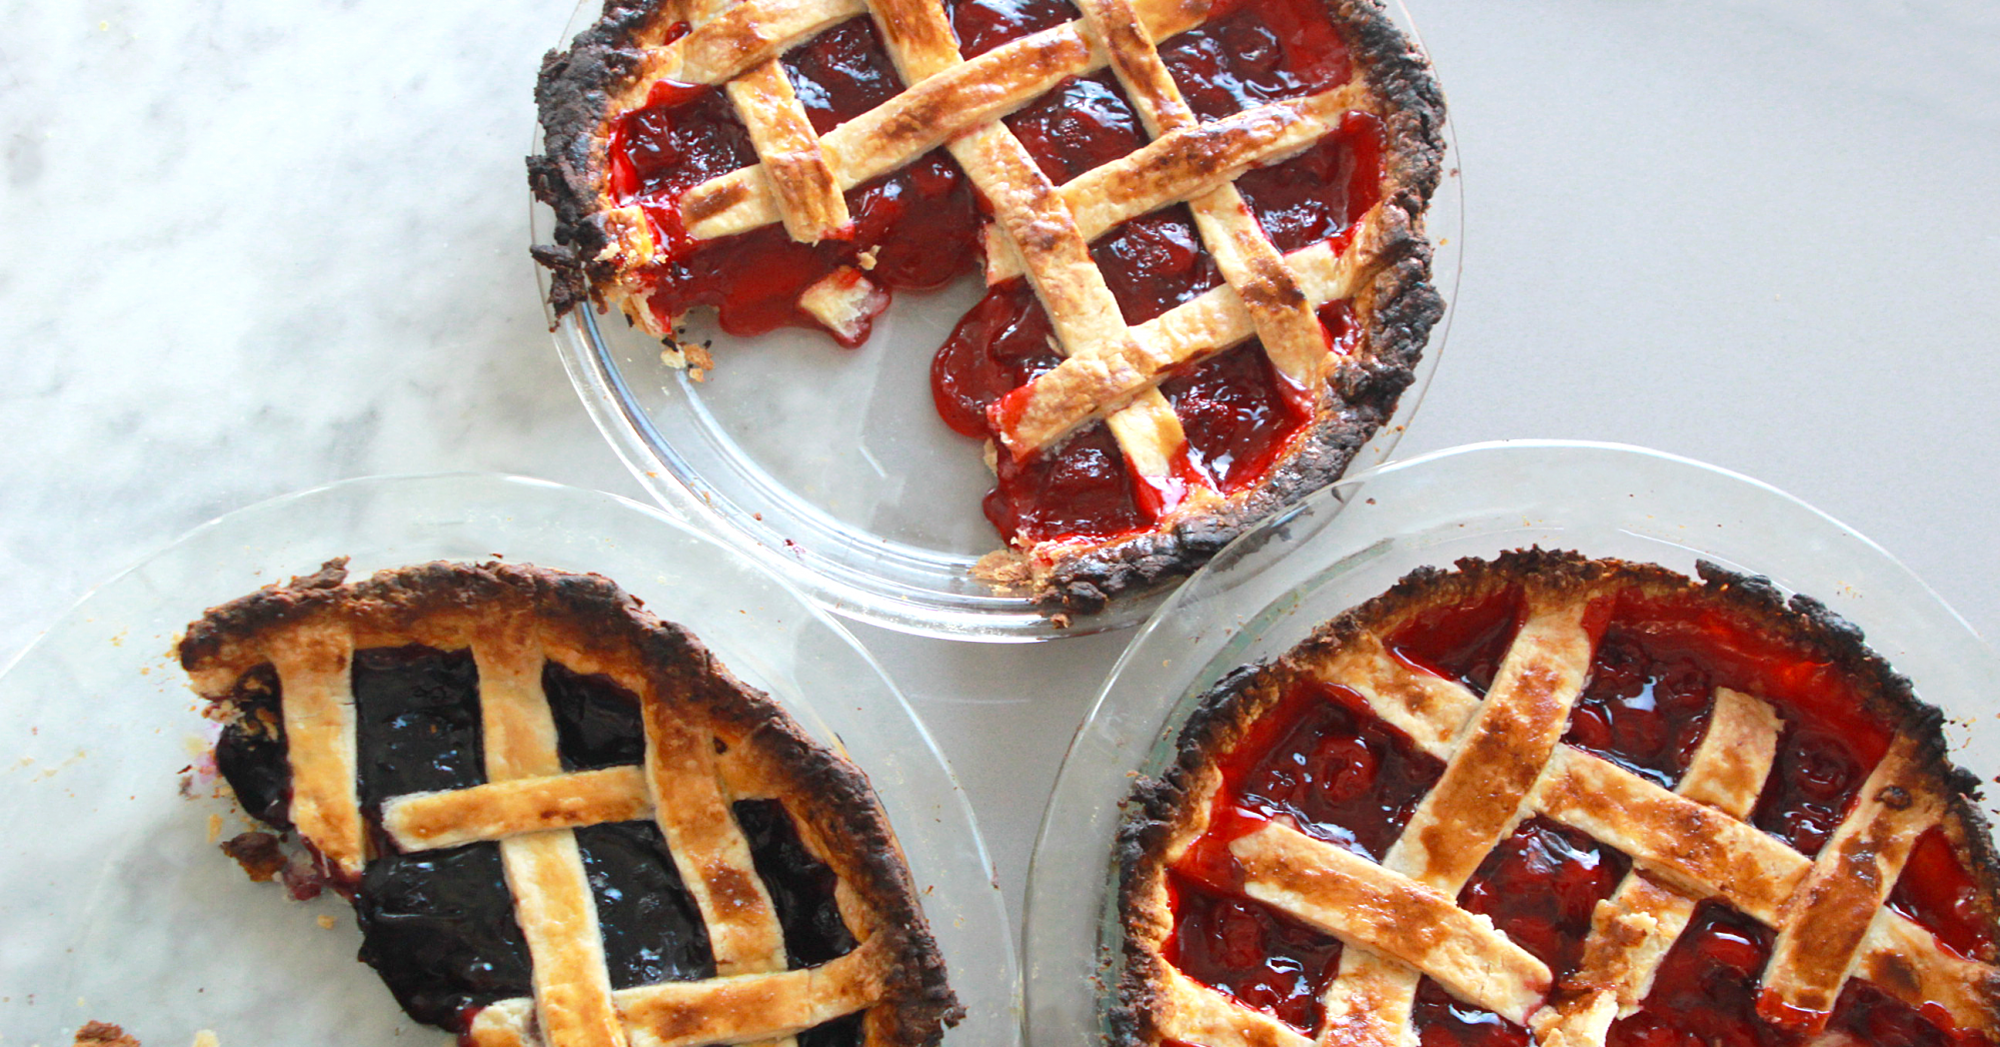 How to Make a Homemade Pie Crust from Scratch